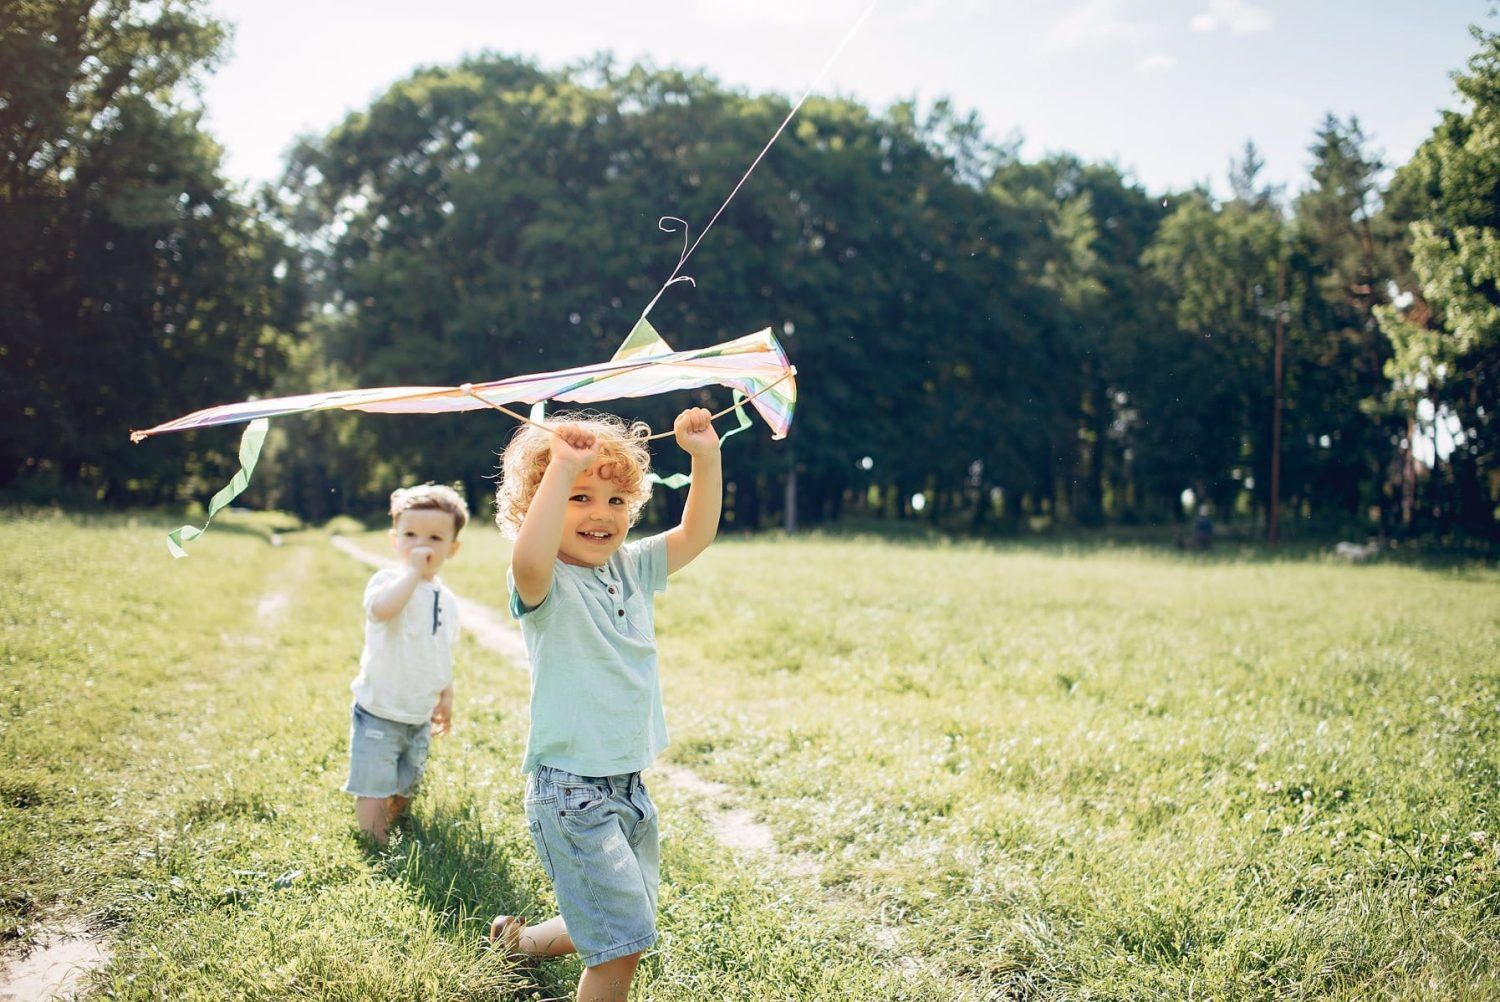 Two brother toddlers run through the park with a kite